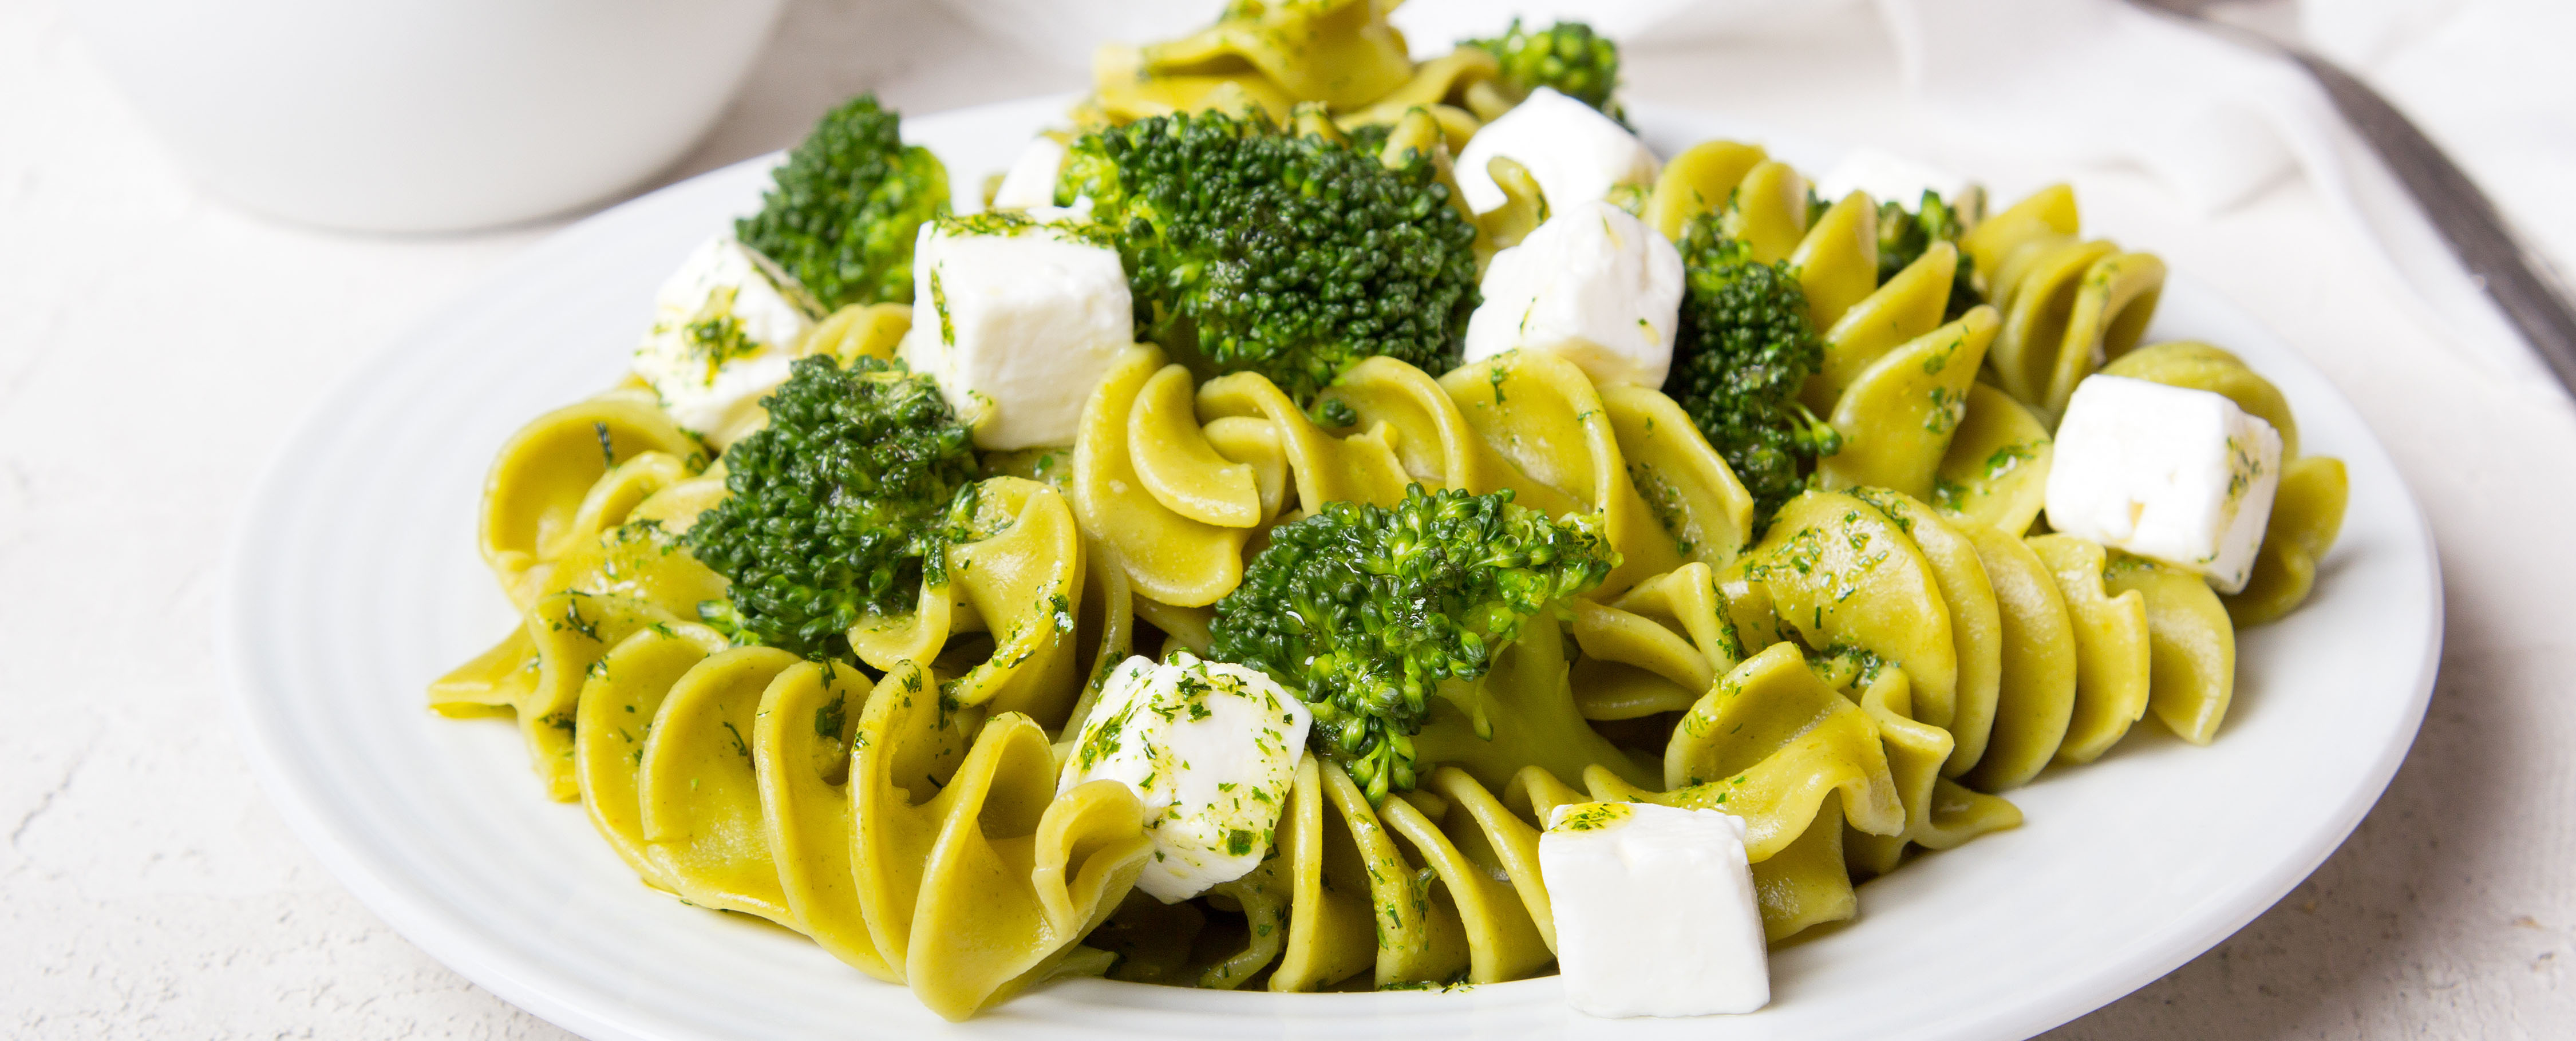 Broccoli & Feta Pasta Salad